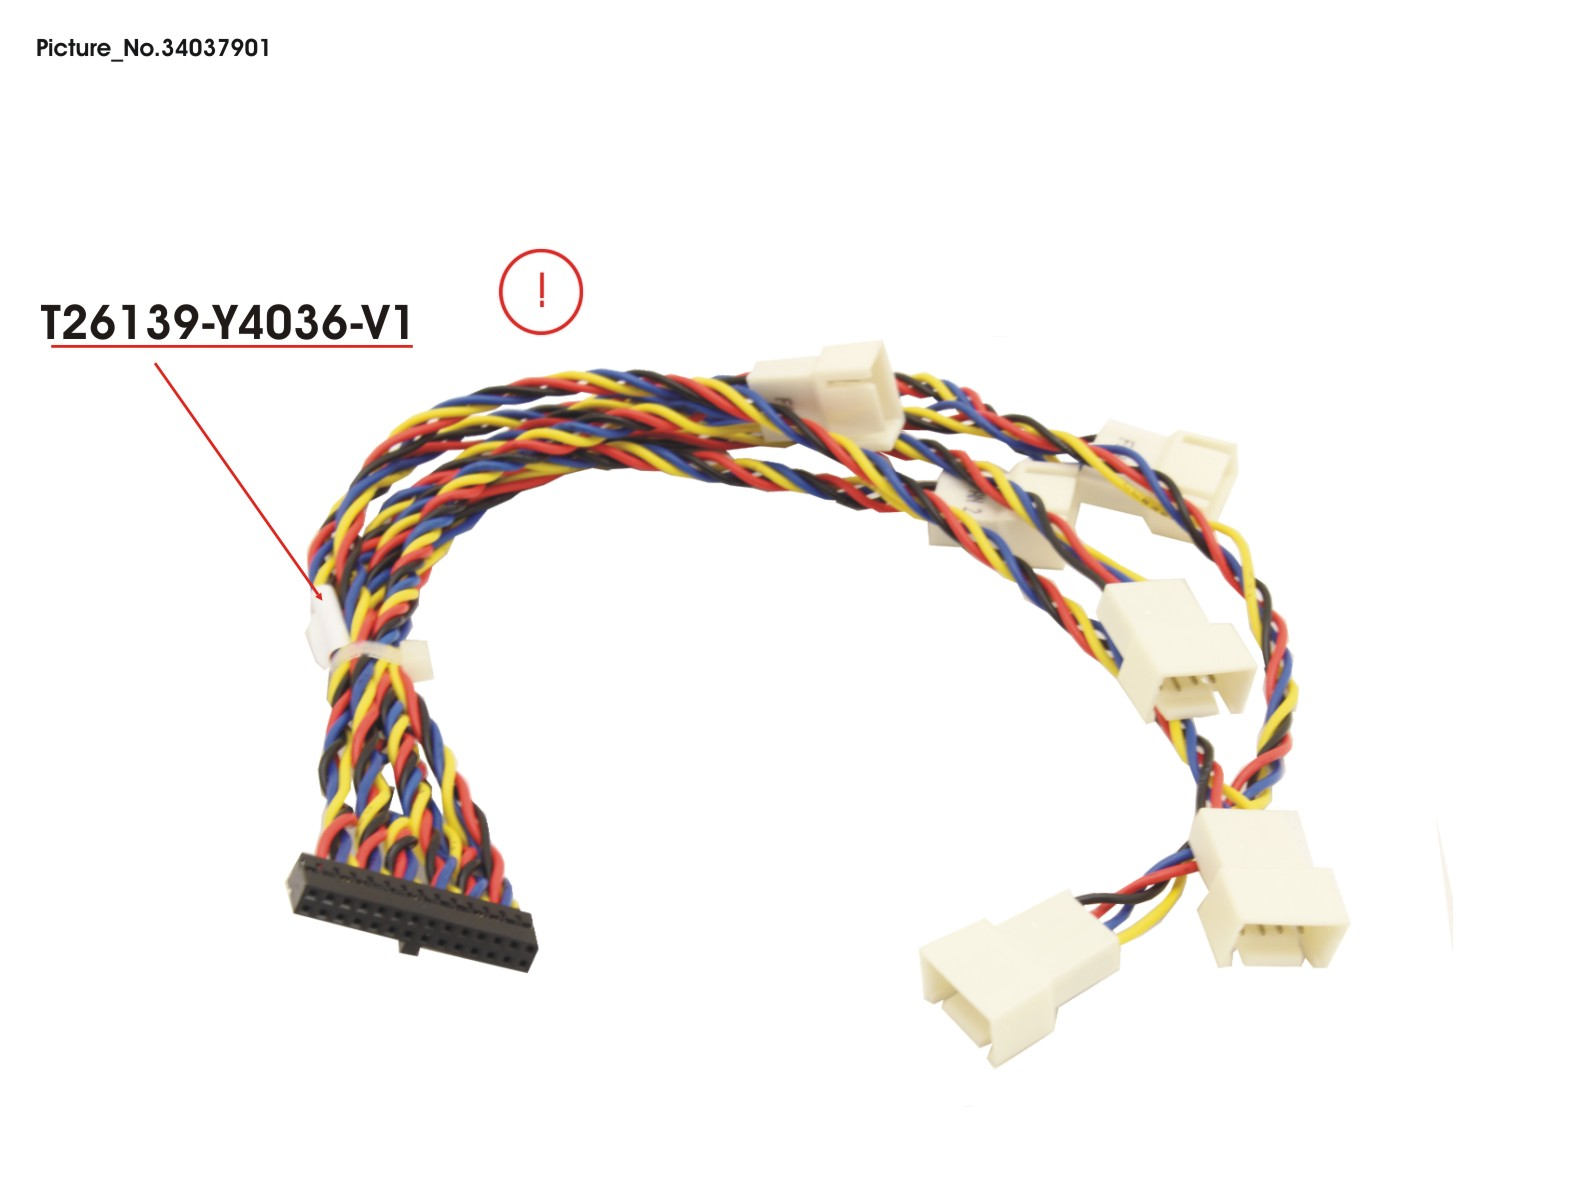 CABLE FAN C620 34037901 T26139-Y4036-V1